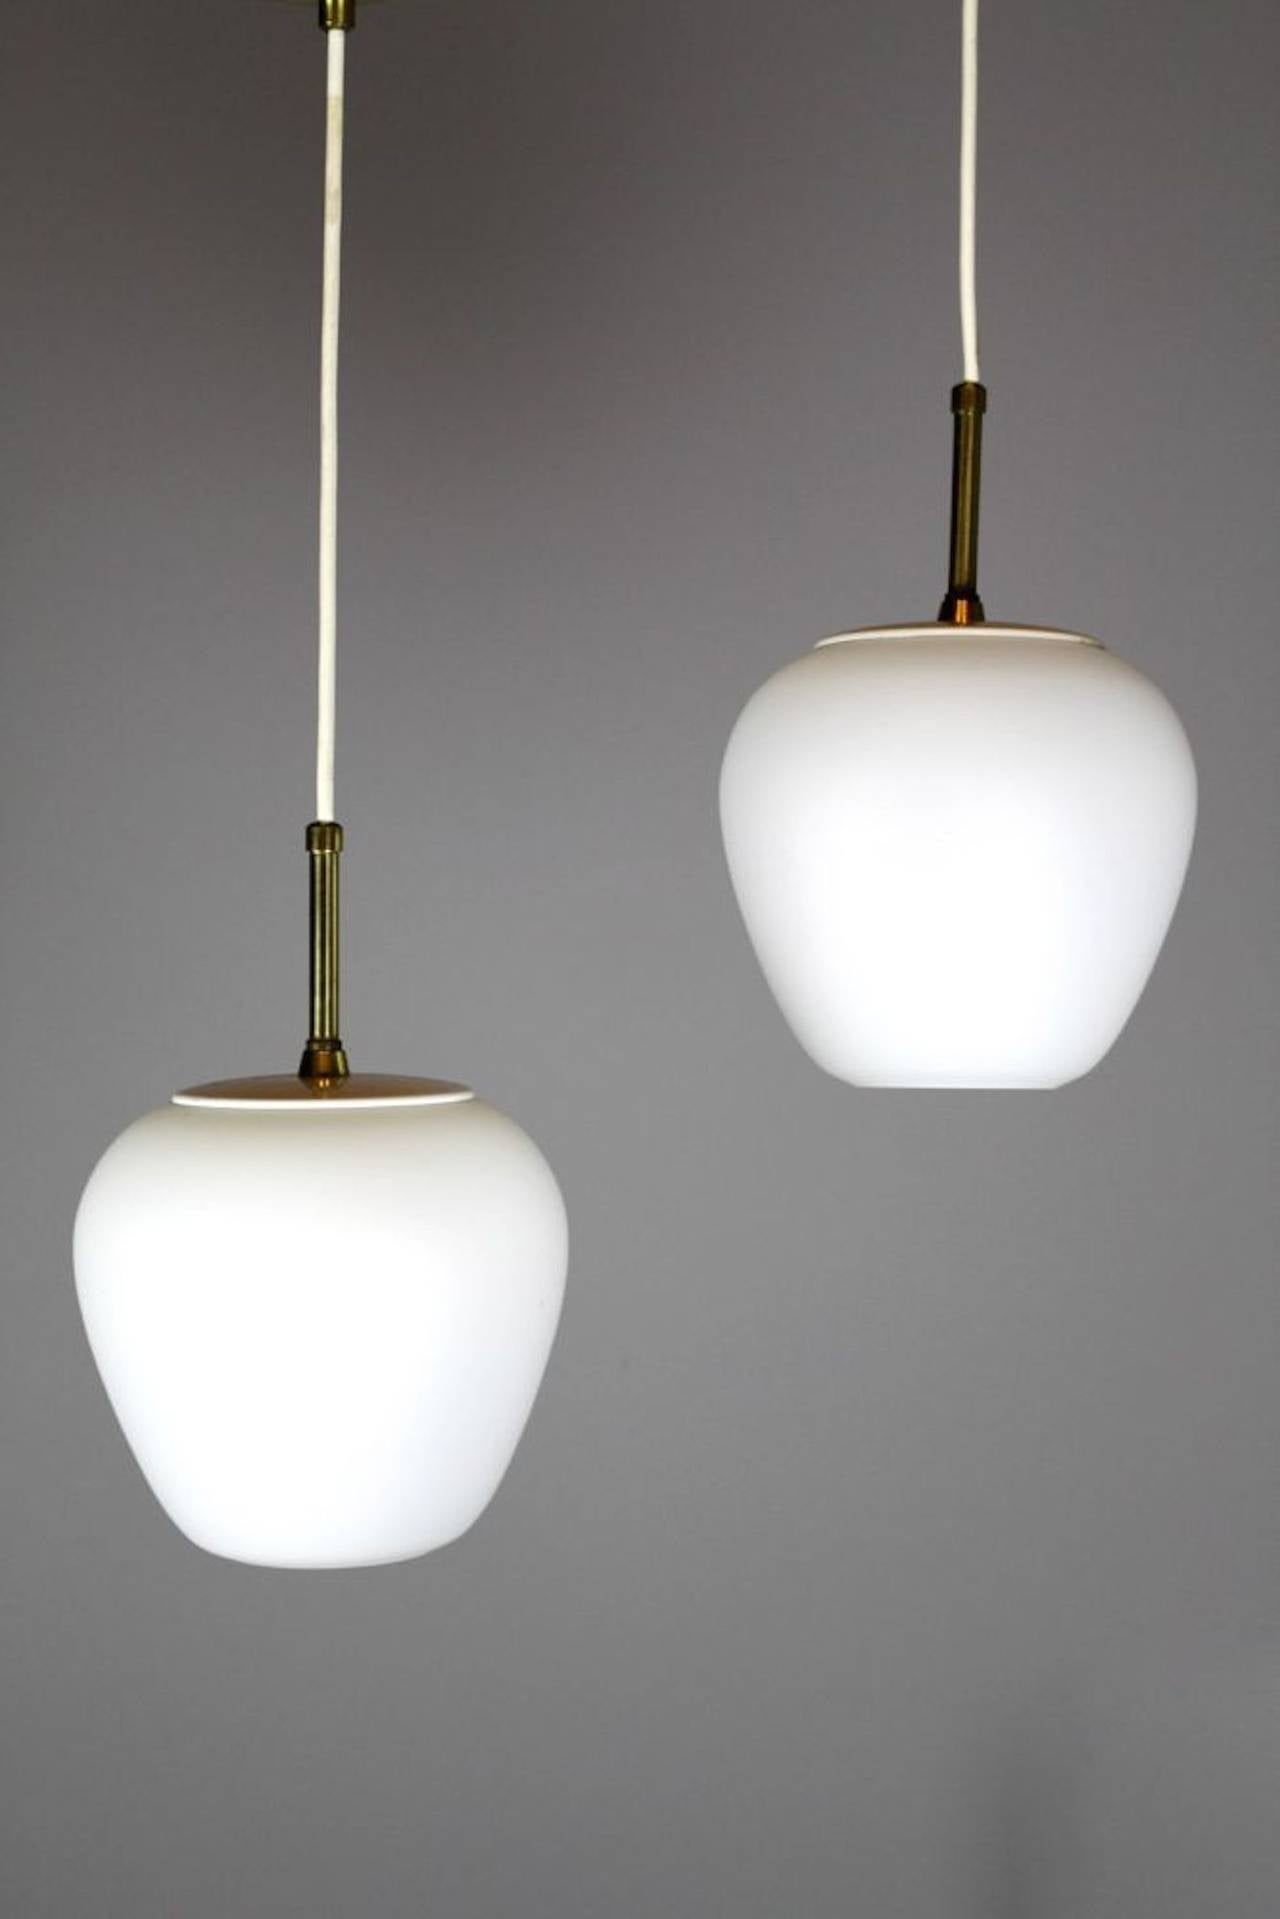 Mid century modern italian style pendant lights at 1stdibs for Mid century modern pendant light fixtures